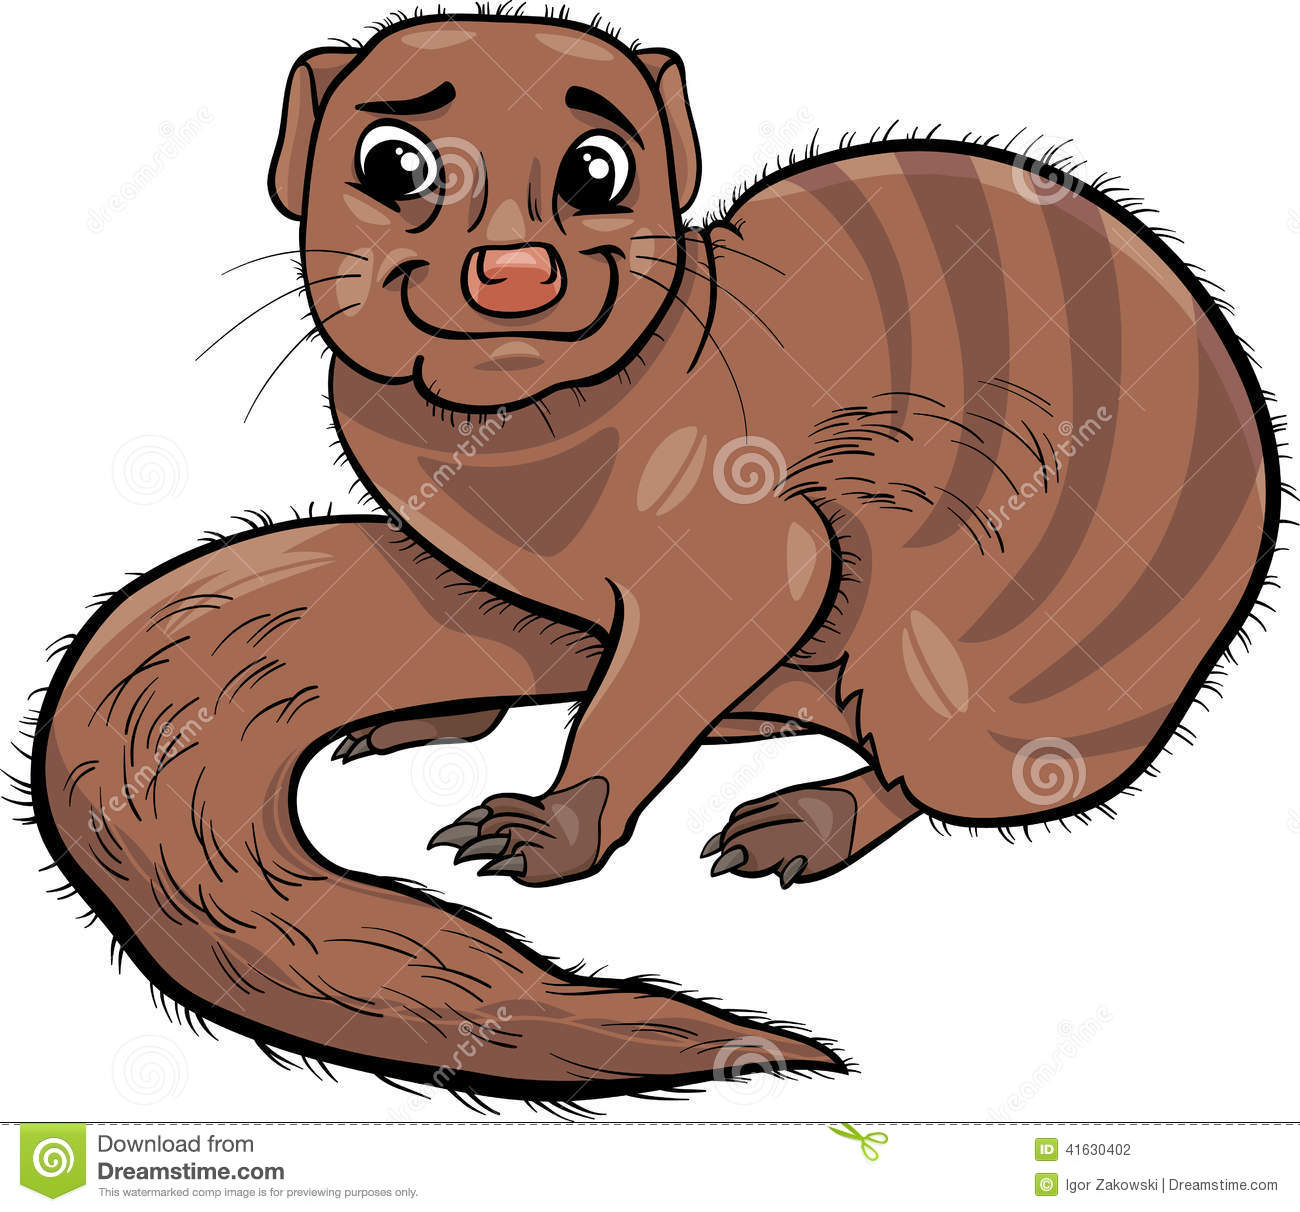 Mongoose clipart #17, Download drawings